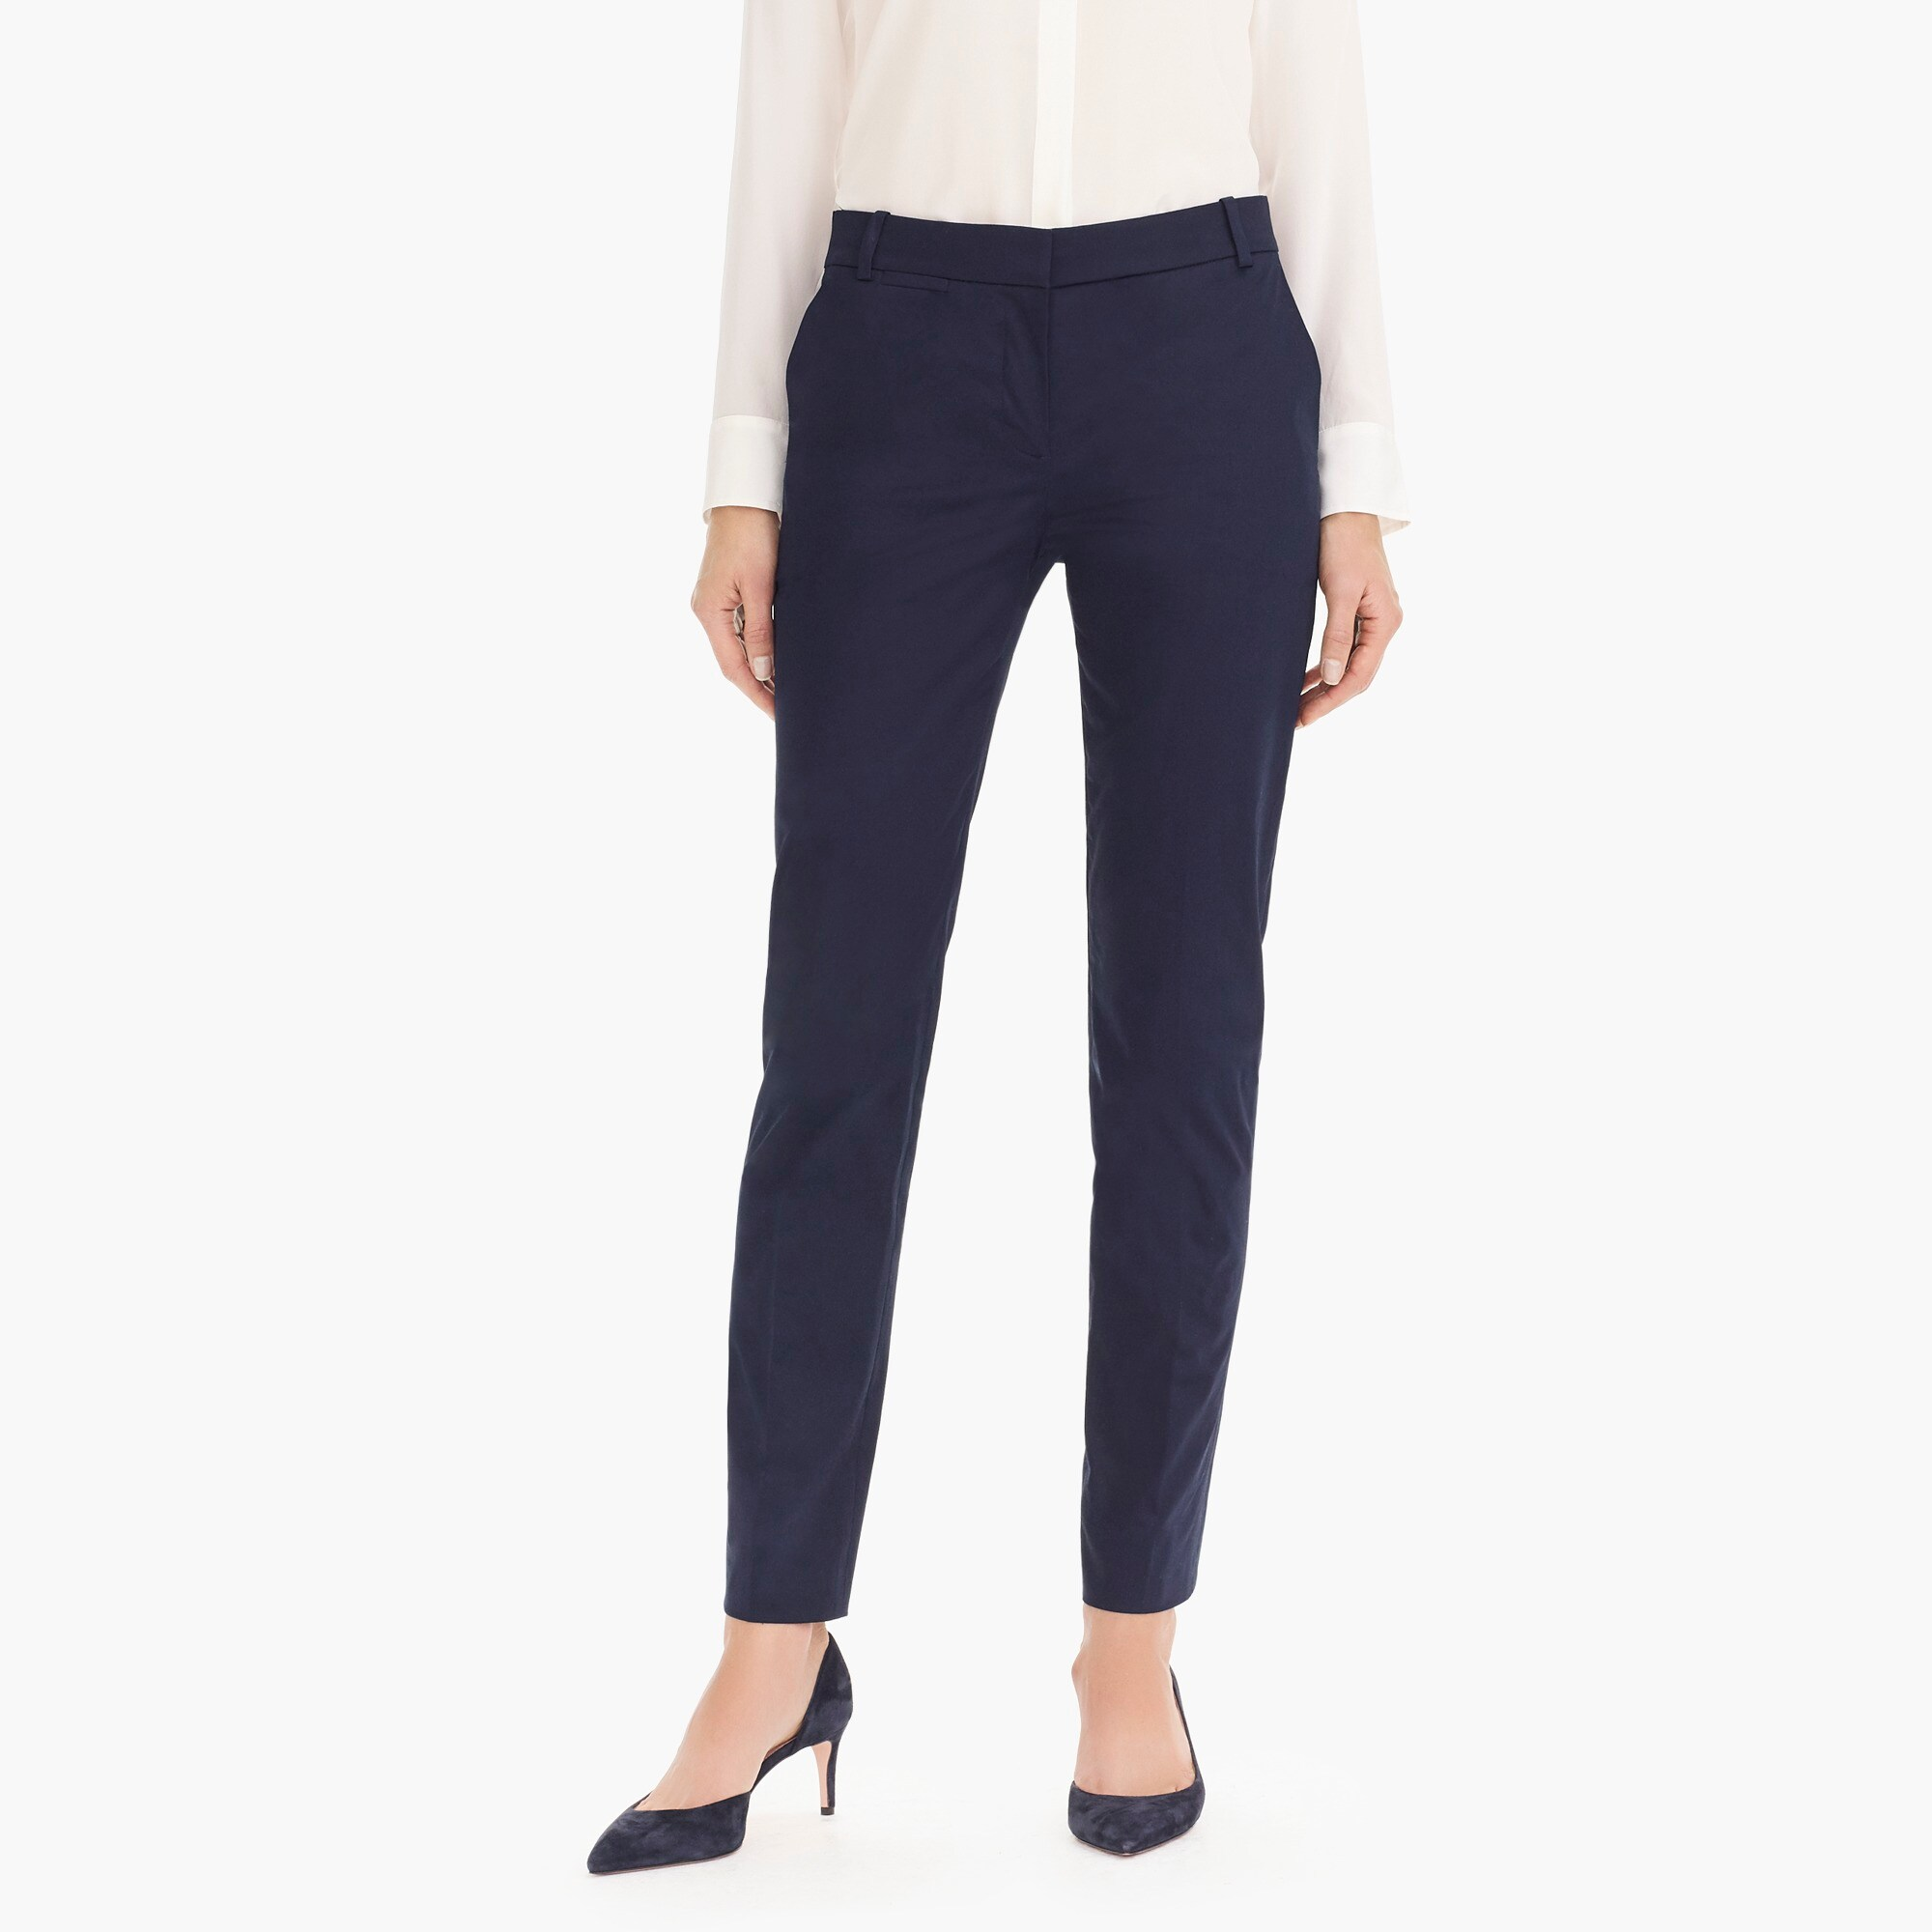 Image 2 for Petite full-length stretch sateen pant